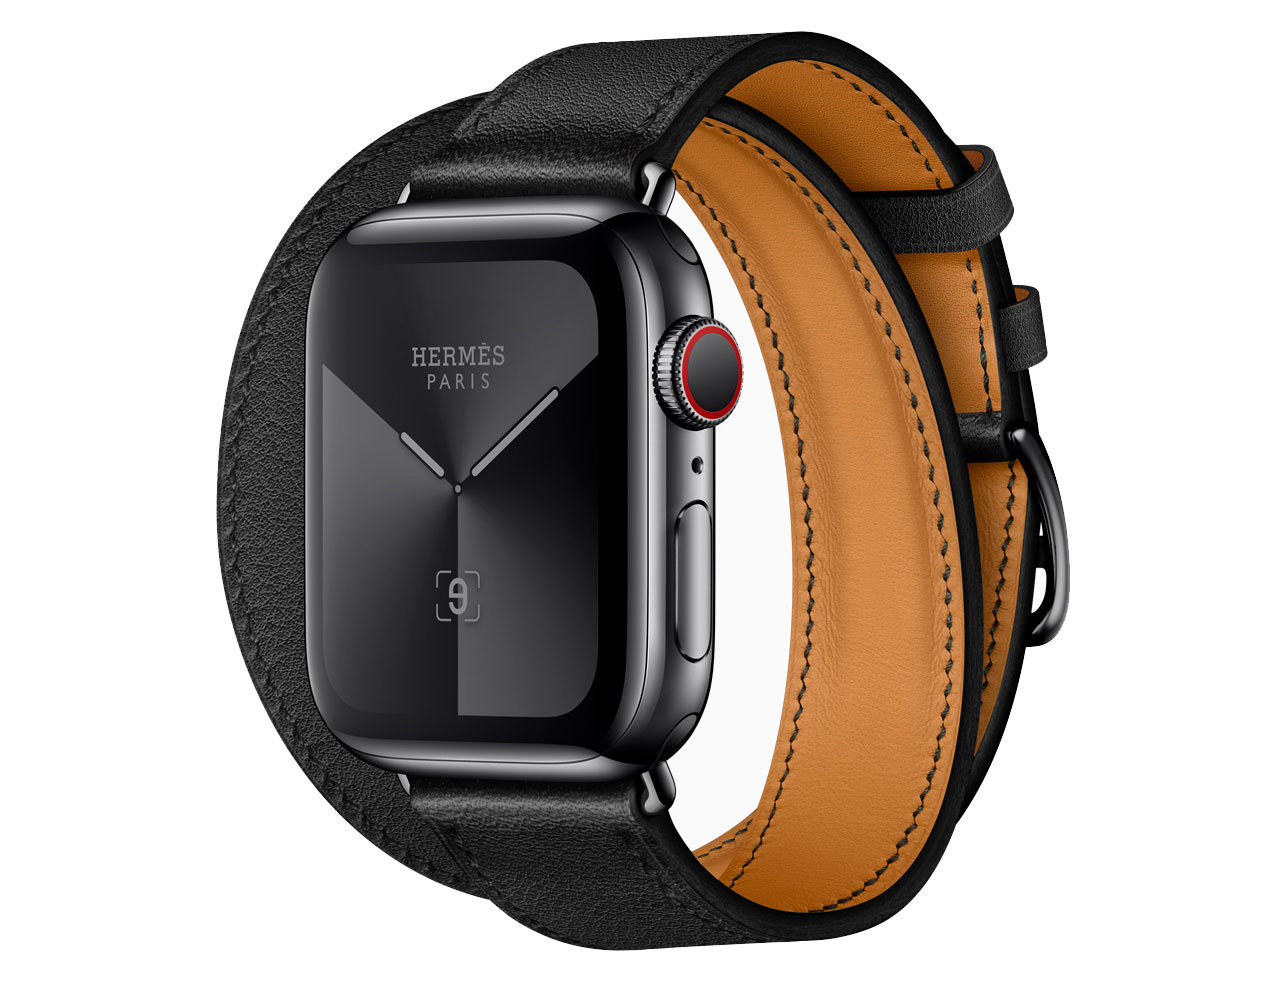 https://www.macfreak.nl/modules/news/images/zArt.AppleWatch5-Hermes-double-tour-noir-band-091019.jpg